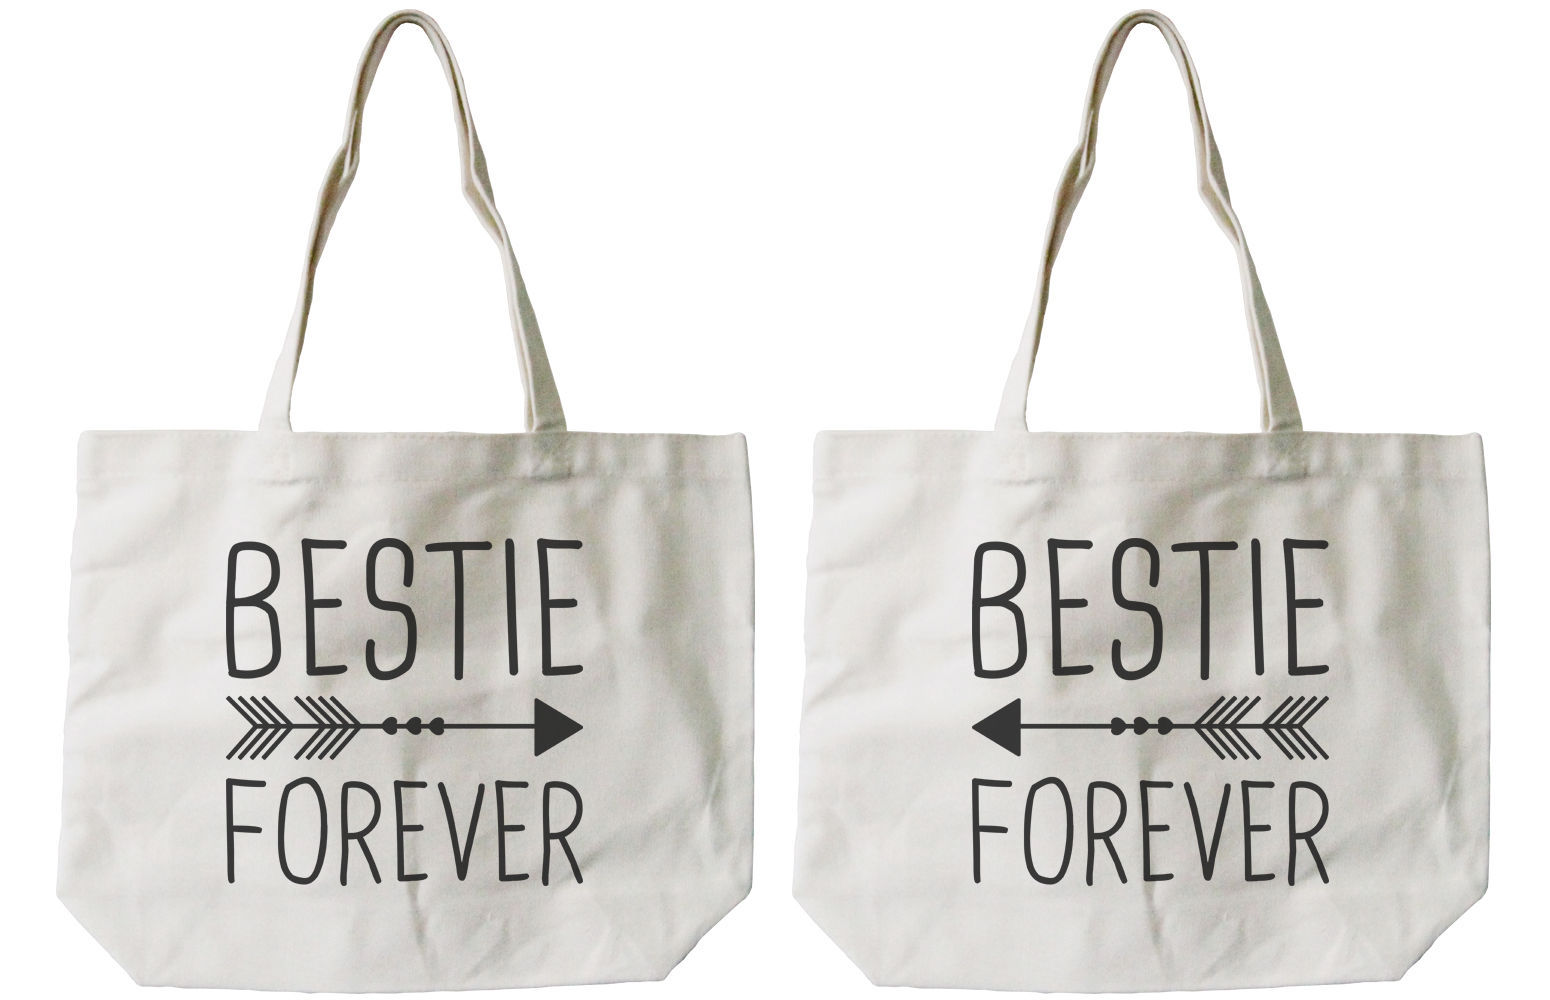 Bestie Forever BFF Matching Cotton Canvas Tote Bags - Eco Bags, Book Bags